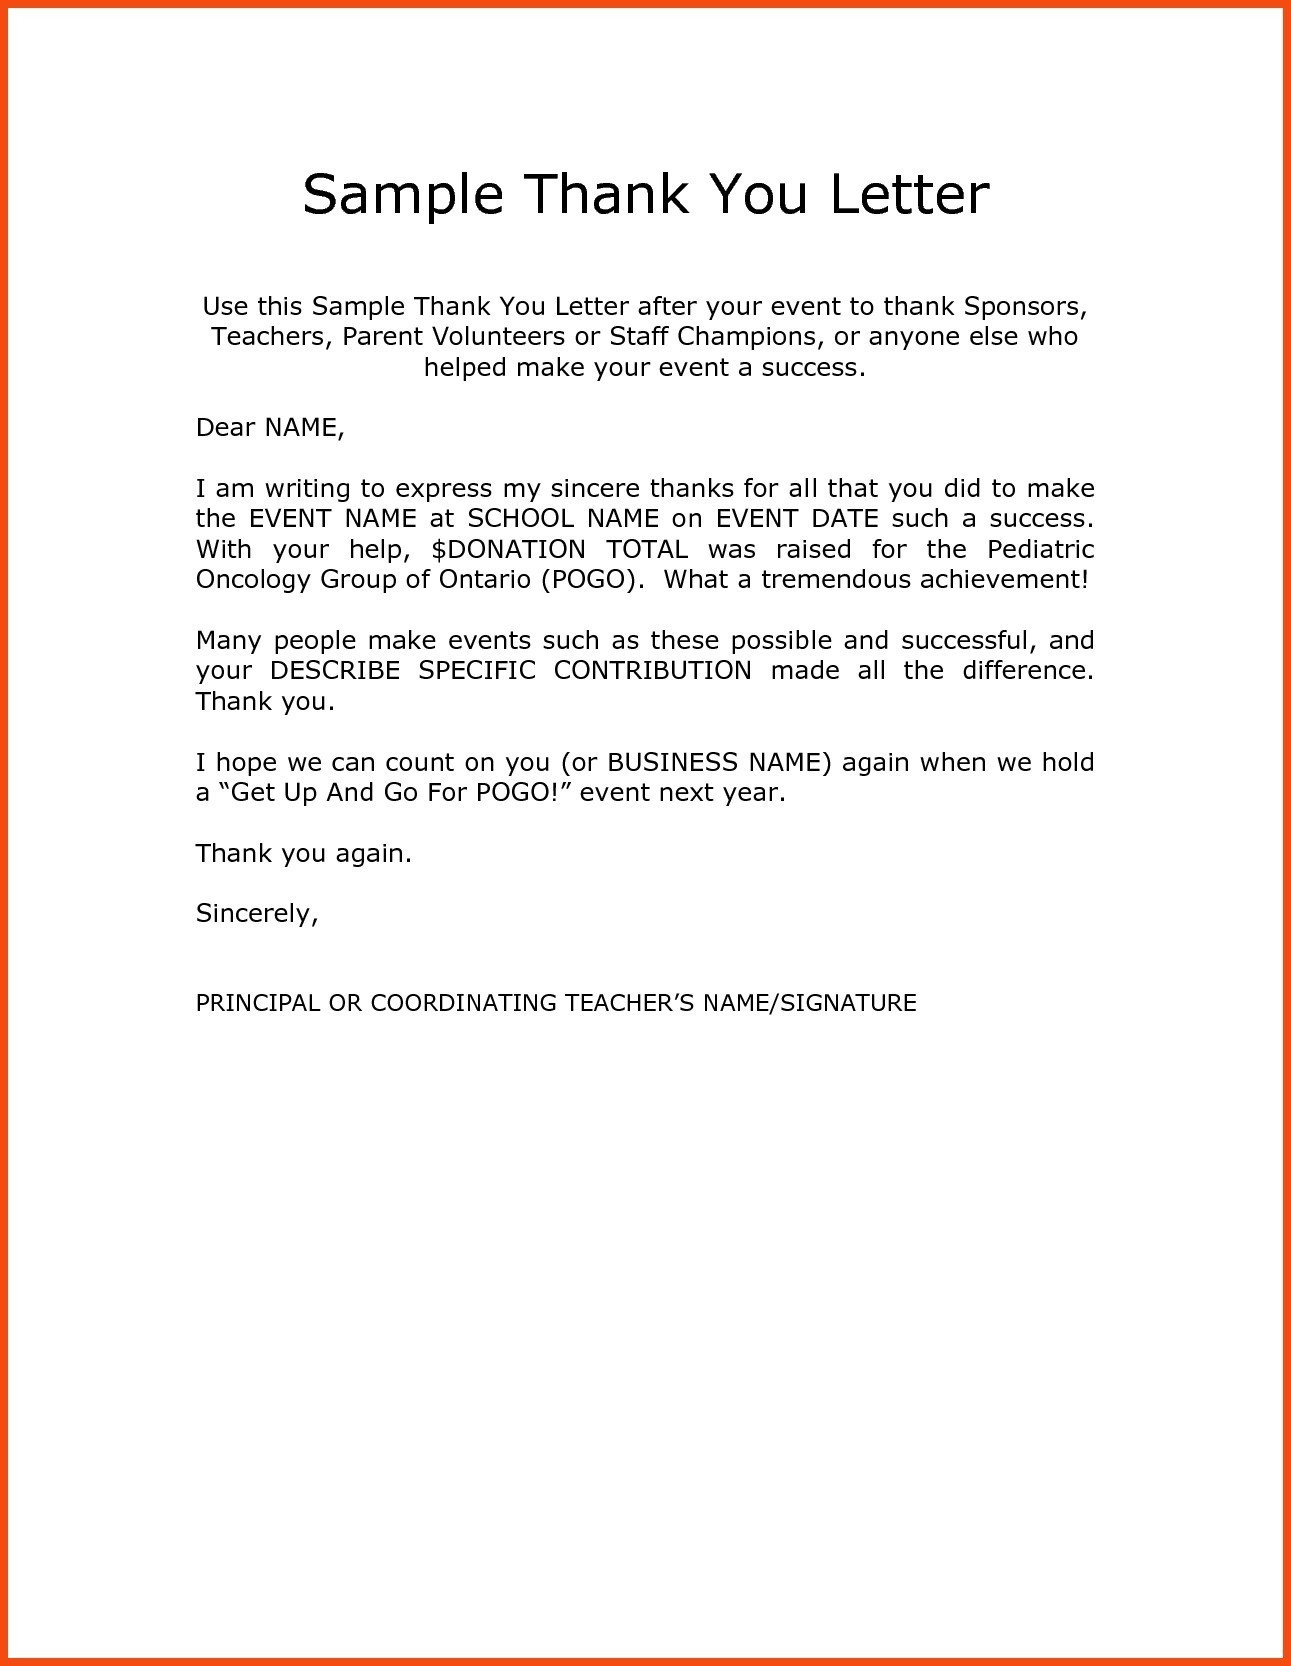 Thank You Letter Samples | 13 Volunteer Thank You Letter Template Ideas Letter Templates